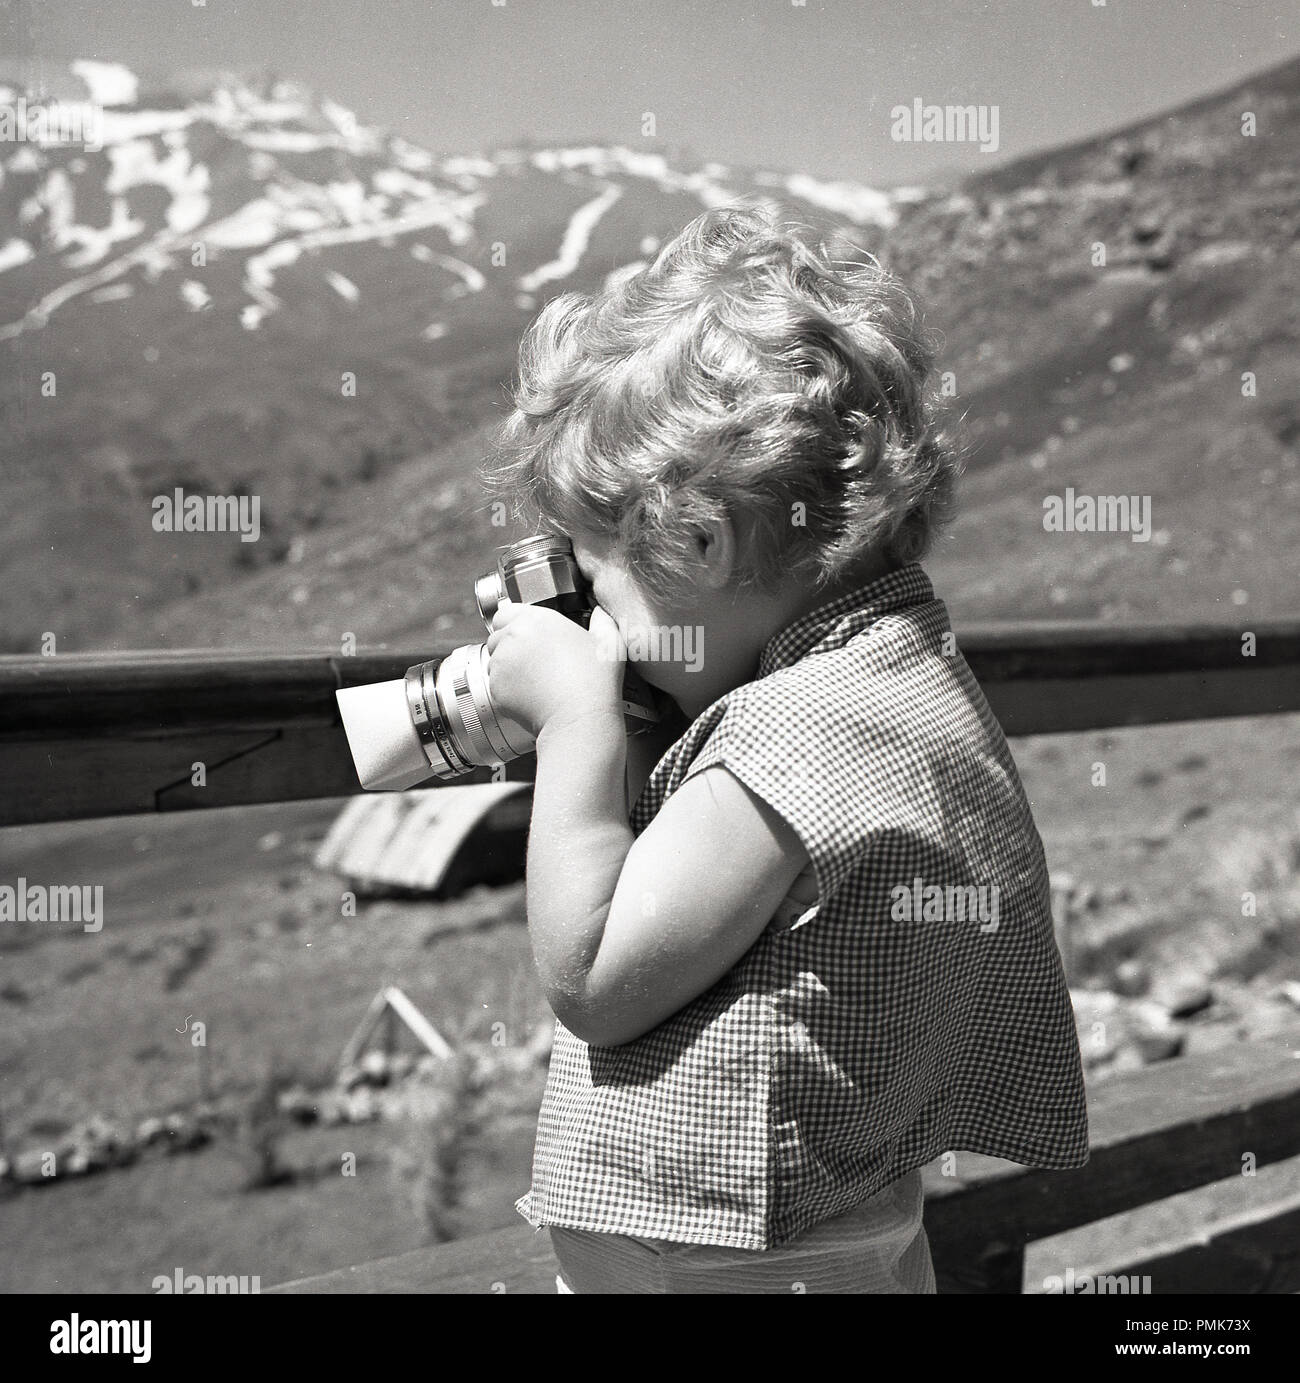 1960s, a bright, sunny day in the mountains and a young child holding a 35mm film camera to take a photograph. Notice the lens hood attached to the camera, used to prevent glare and block the sun's rays. - Stock Image